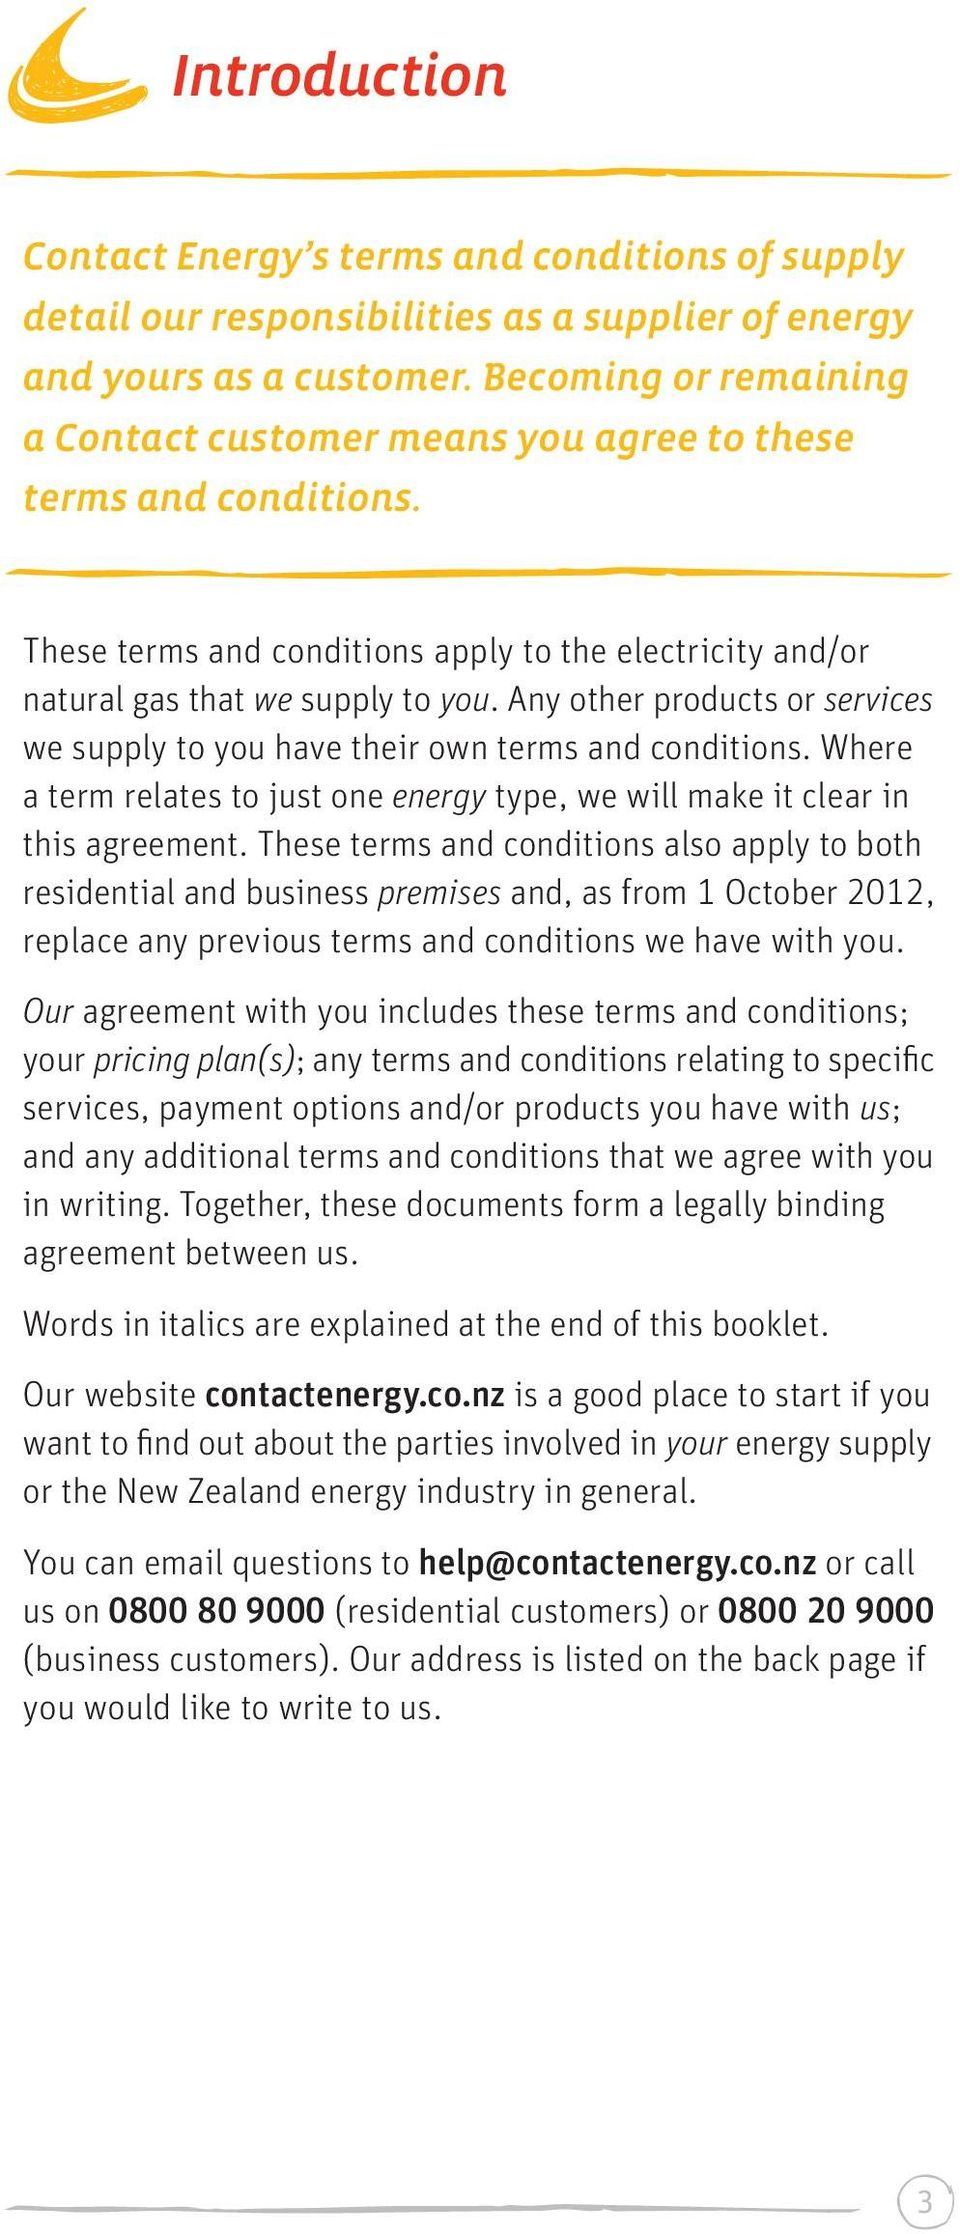 Any other products or services we supply to you have their own terms and conditions. Where a term relates to just one energy type, we will make it clear in this agreement.